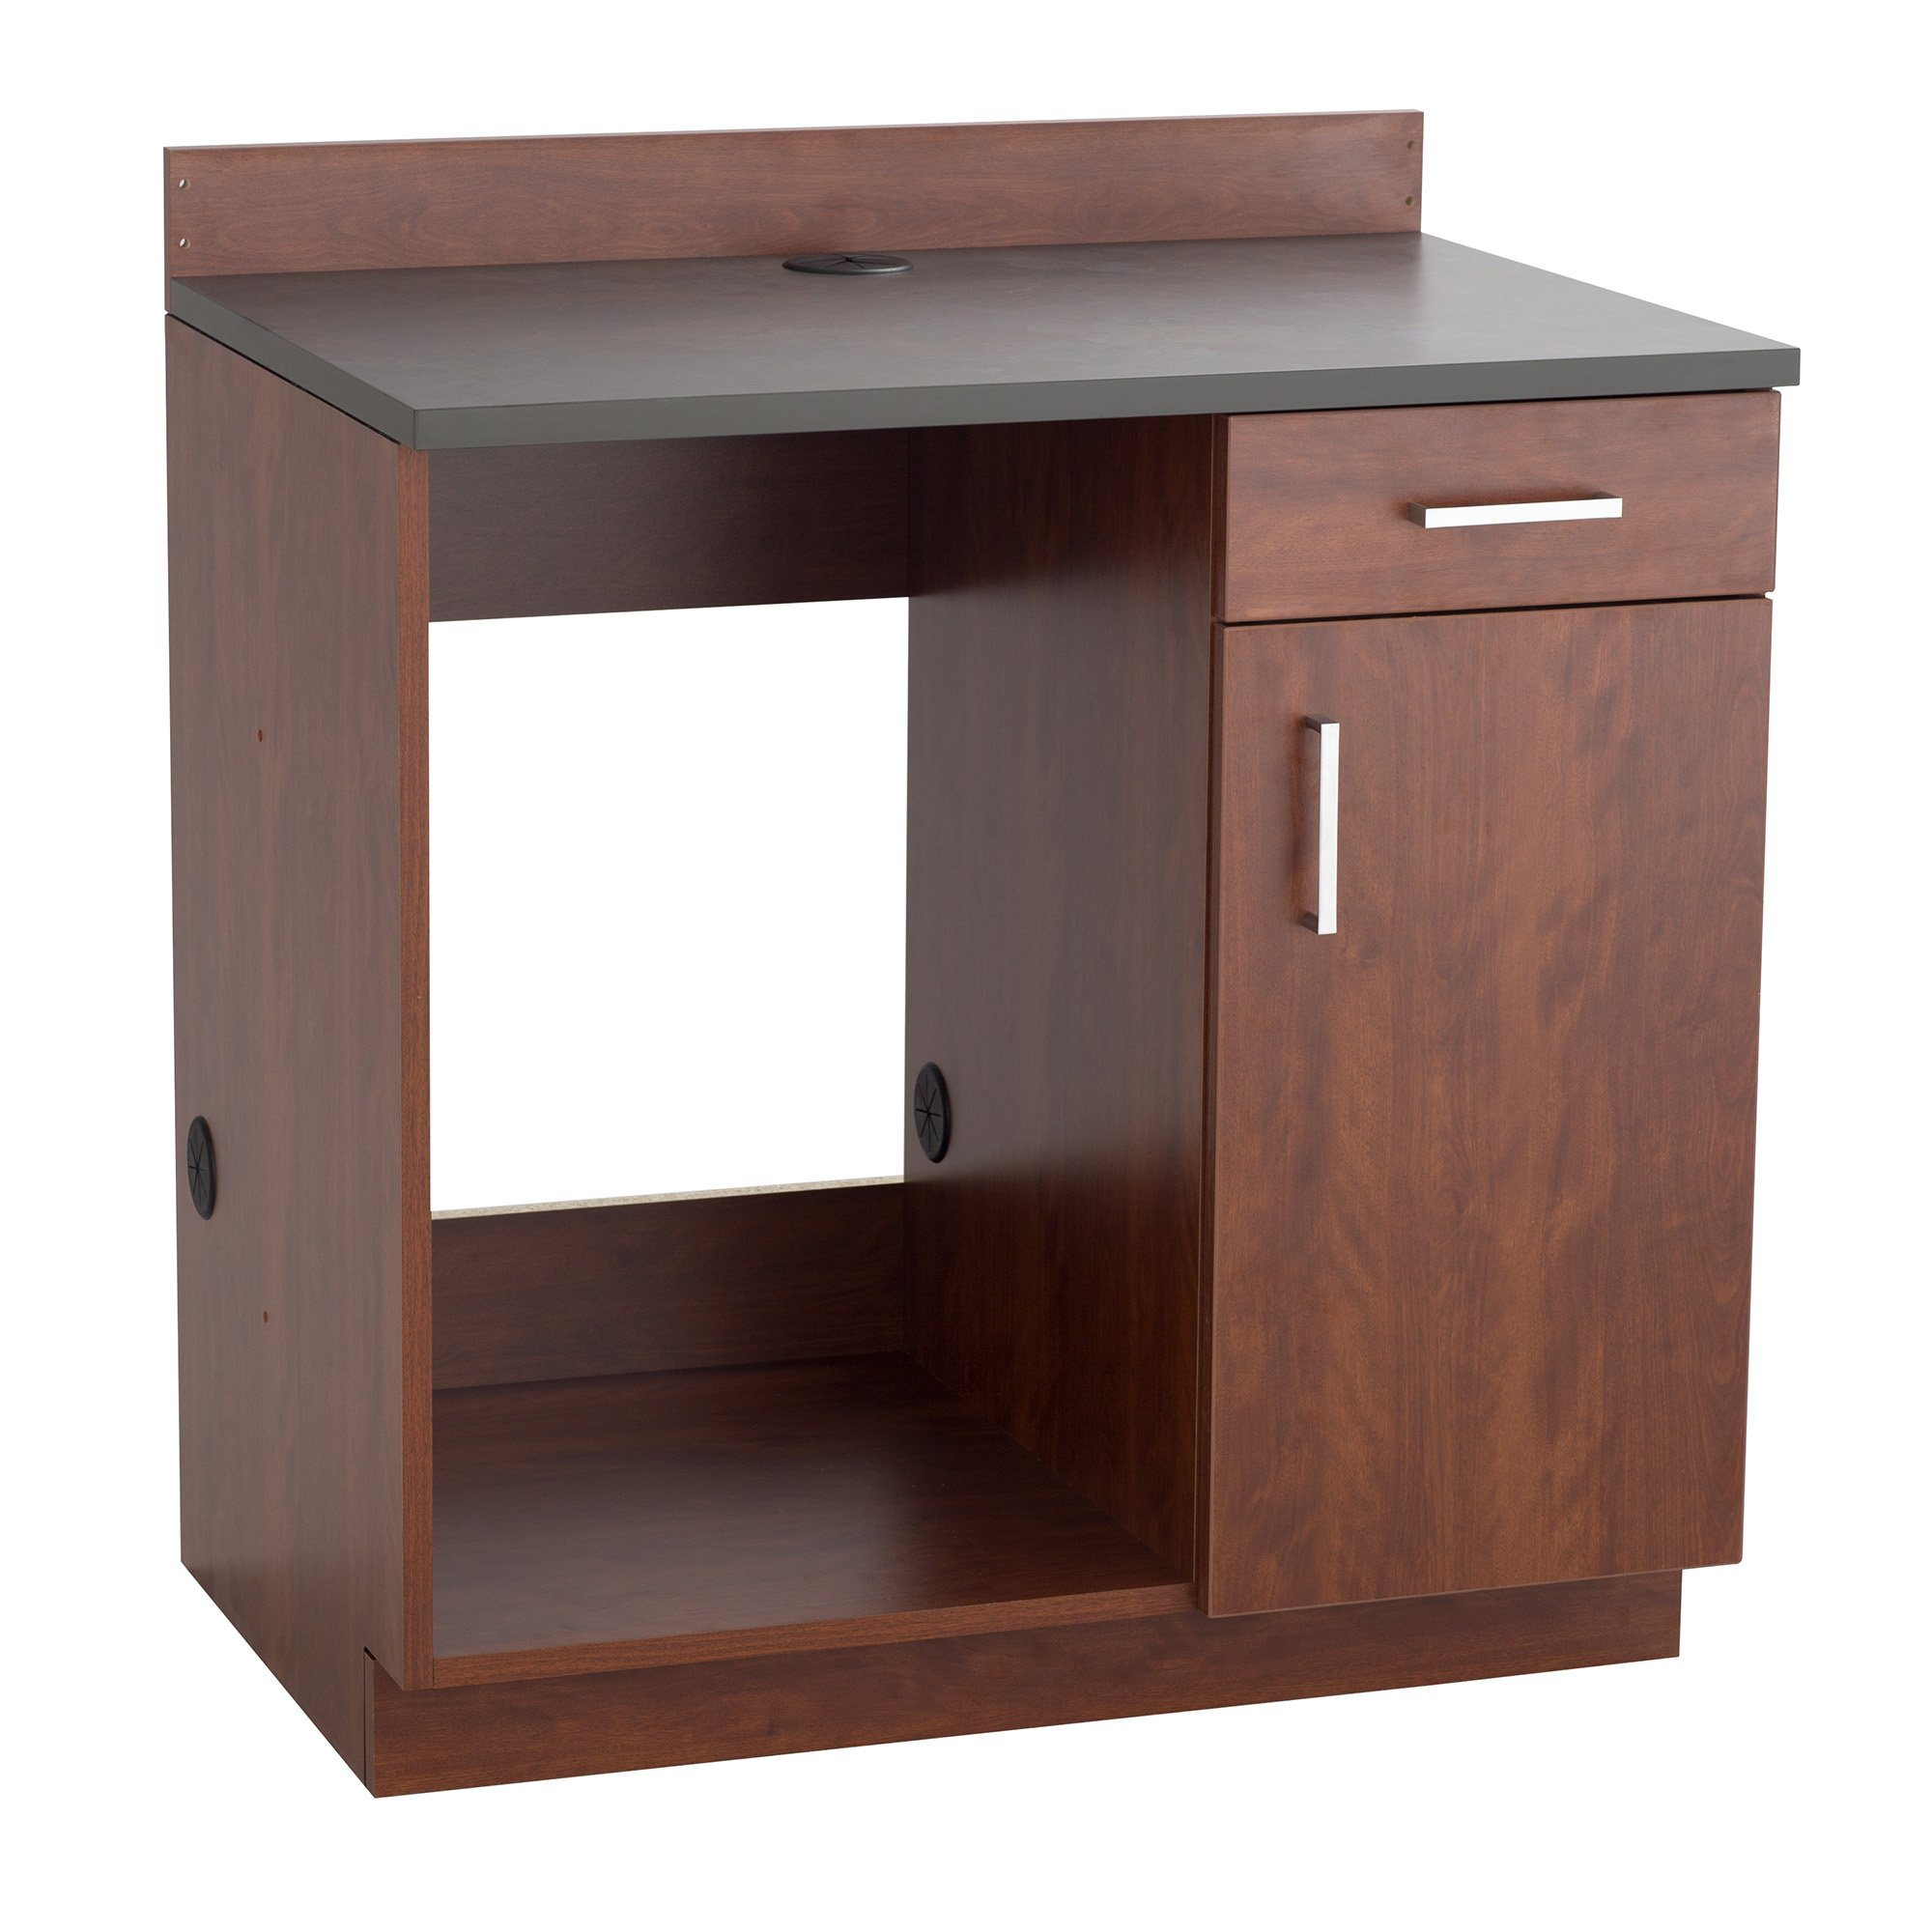 Safco Products Modular Hospitality Breakroom Base Cabinet, Appliance, Mahogany Base/Rustic Slate Top by Safco